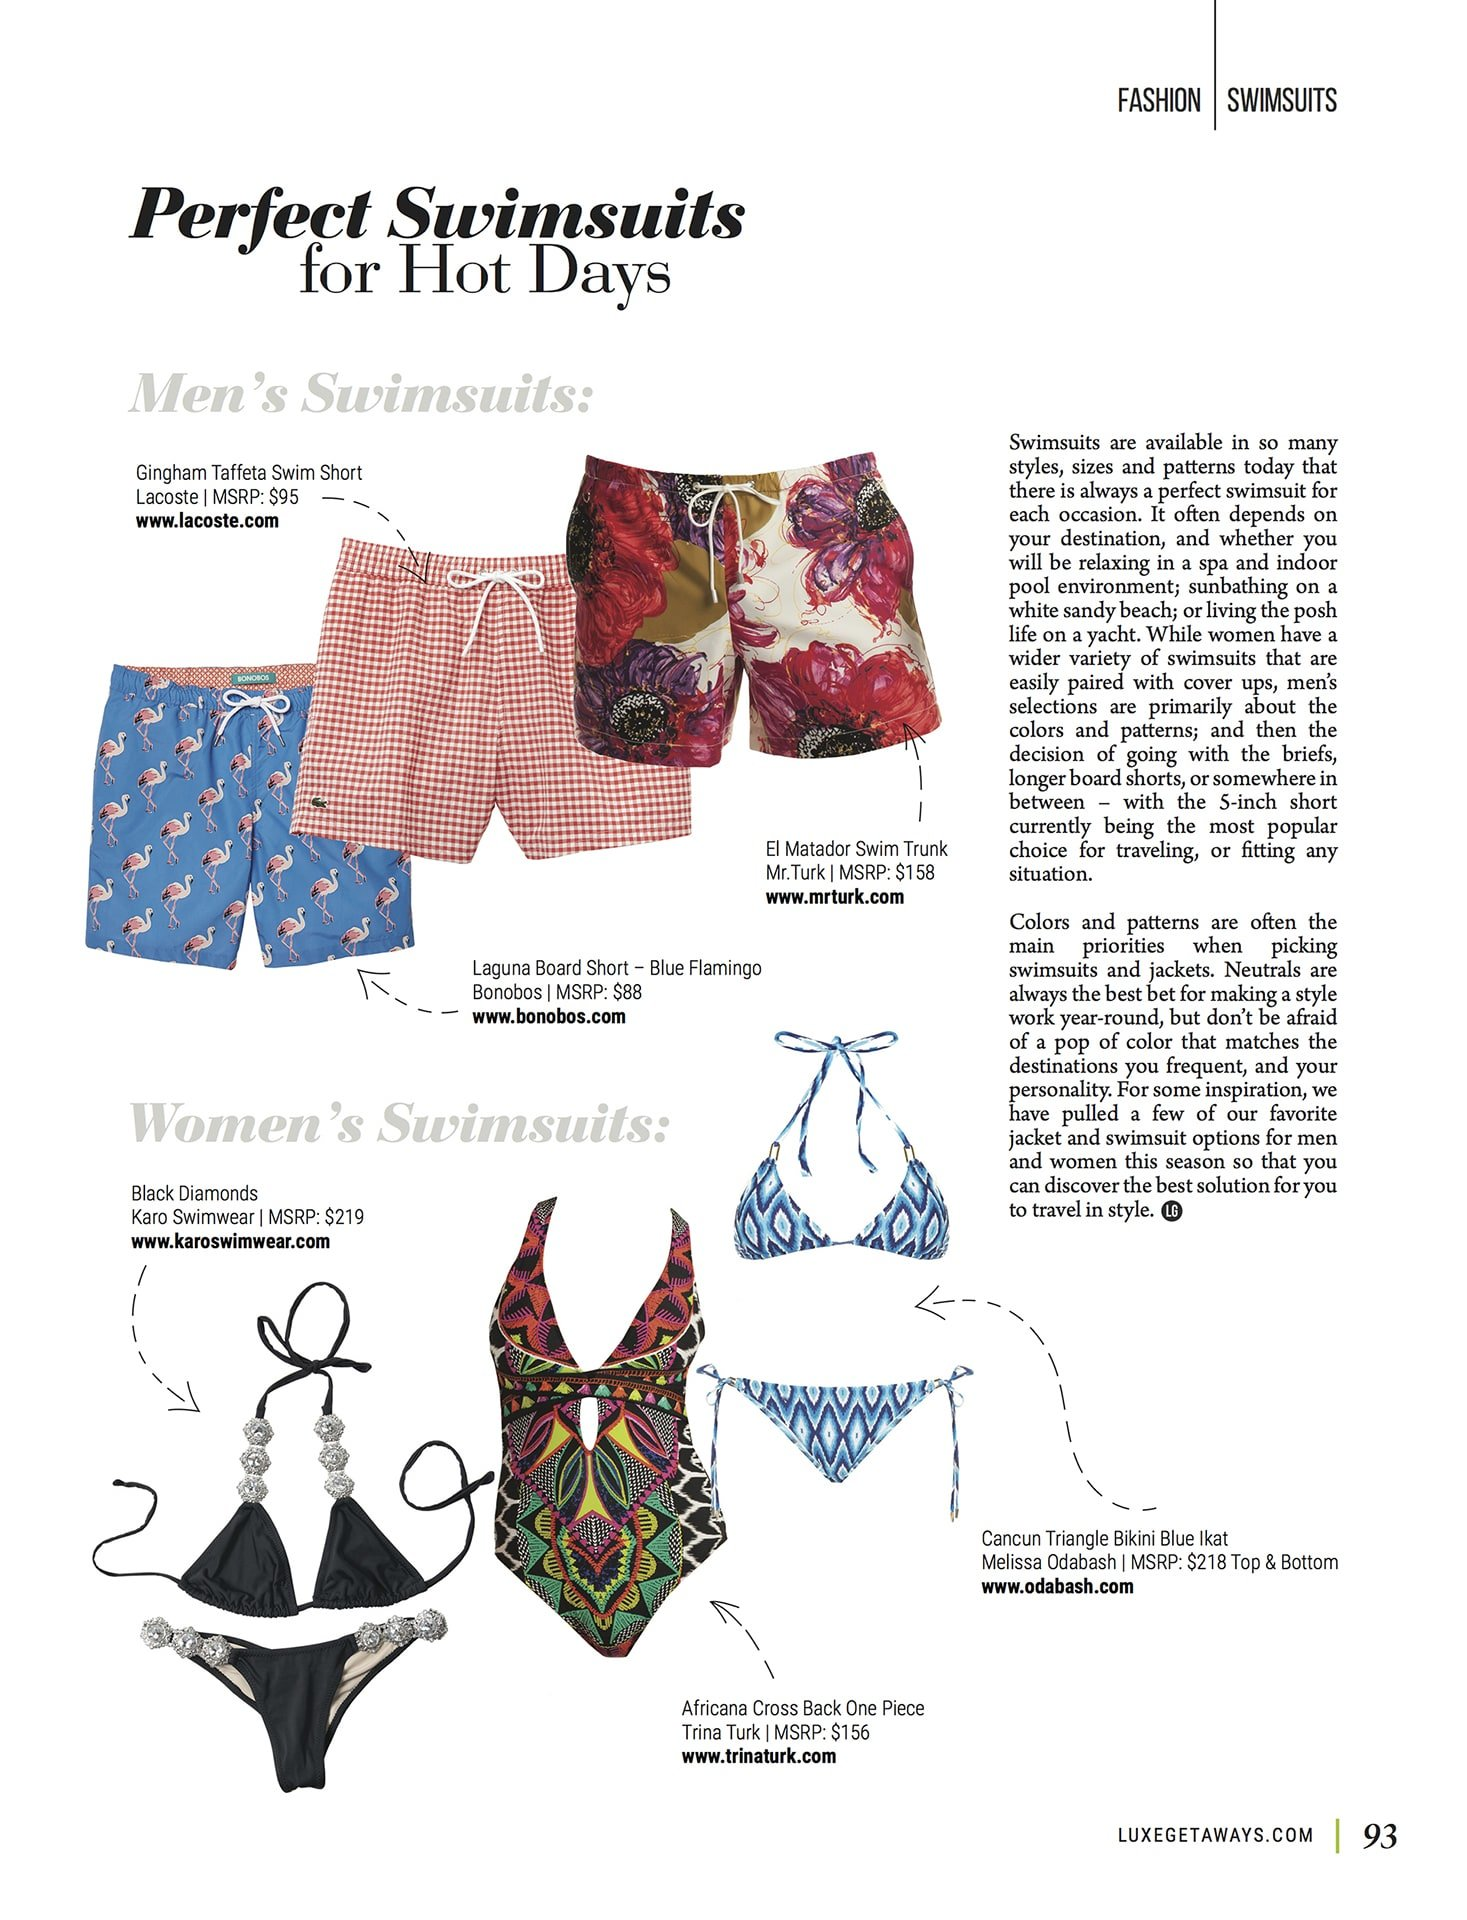 luxegetaways_fall2016_jackets-swimsuits_2